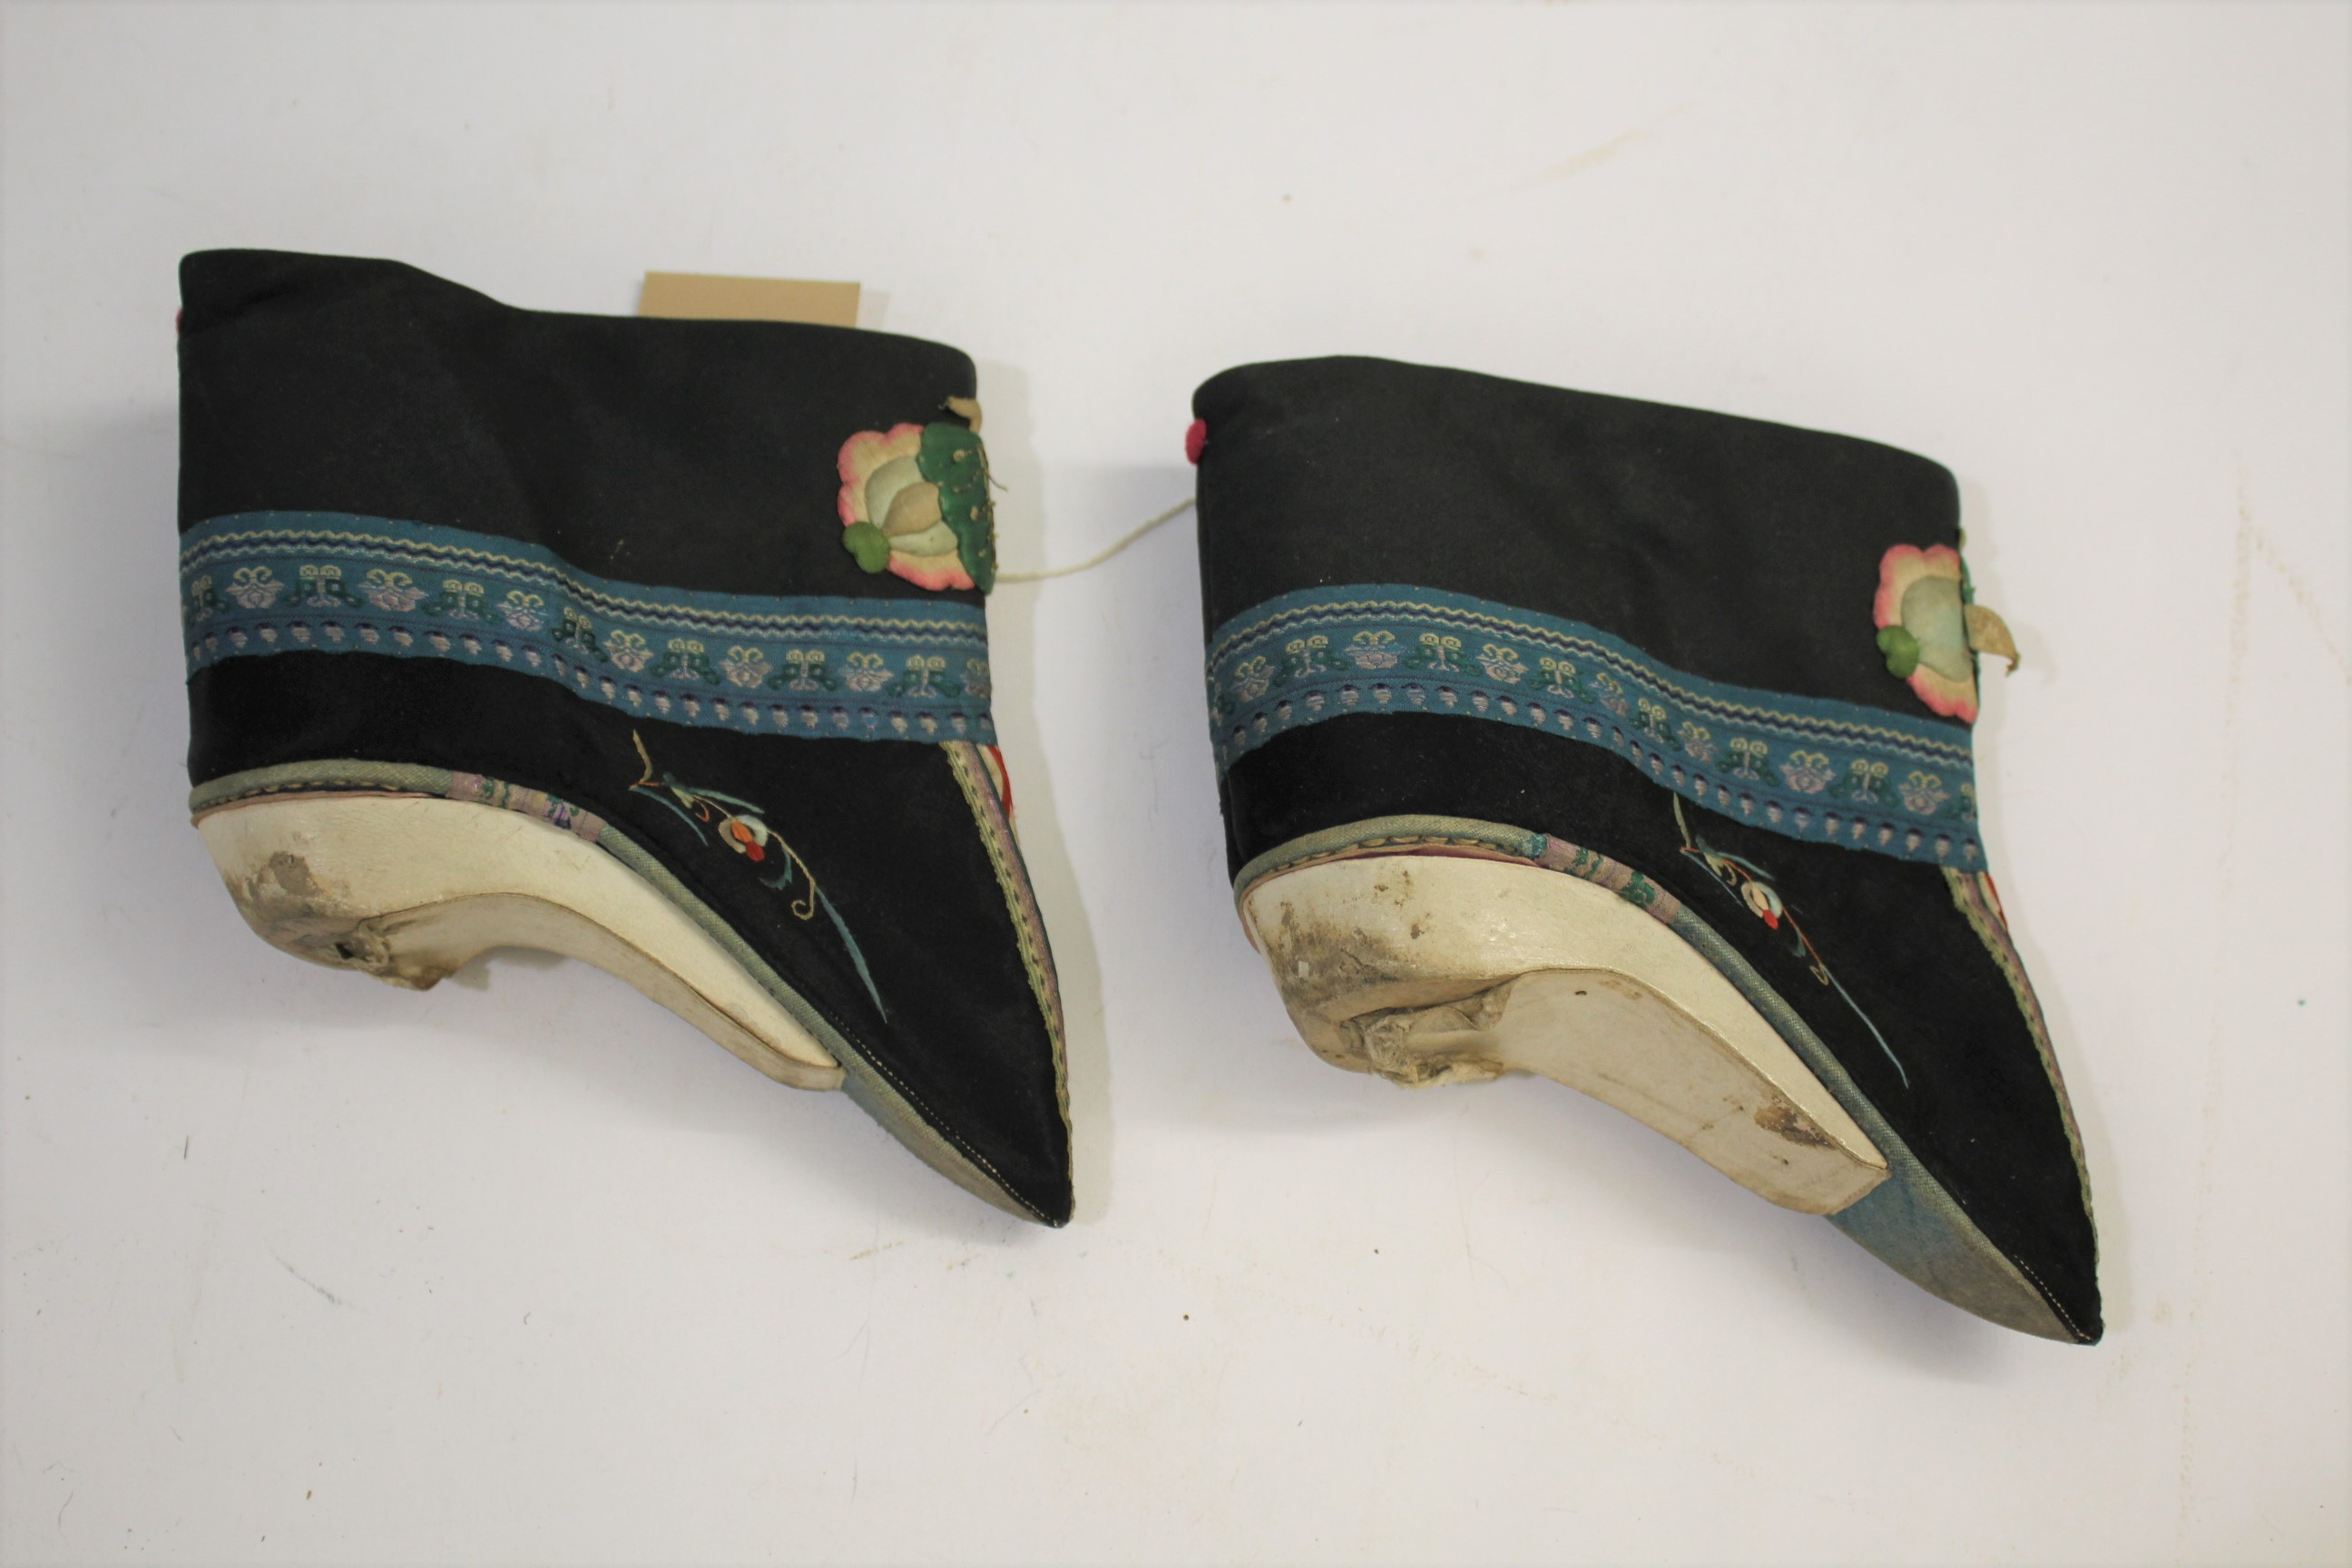 Lot 1883 - PAIR OF CHINESE EMBROIDERED SHOES a pair of late 19thc/early 20thc Chinese embroidered shoes,